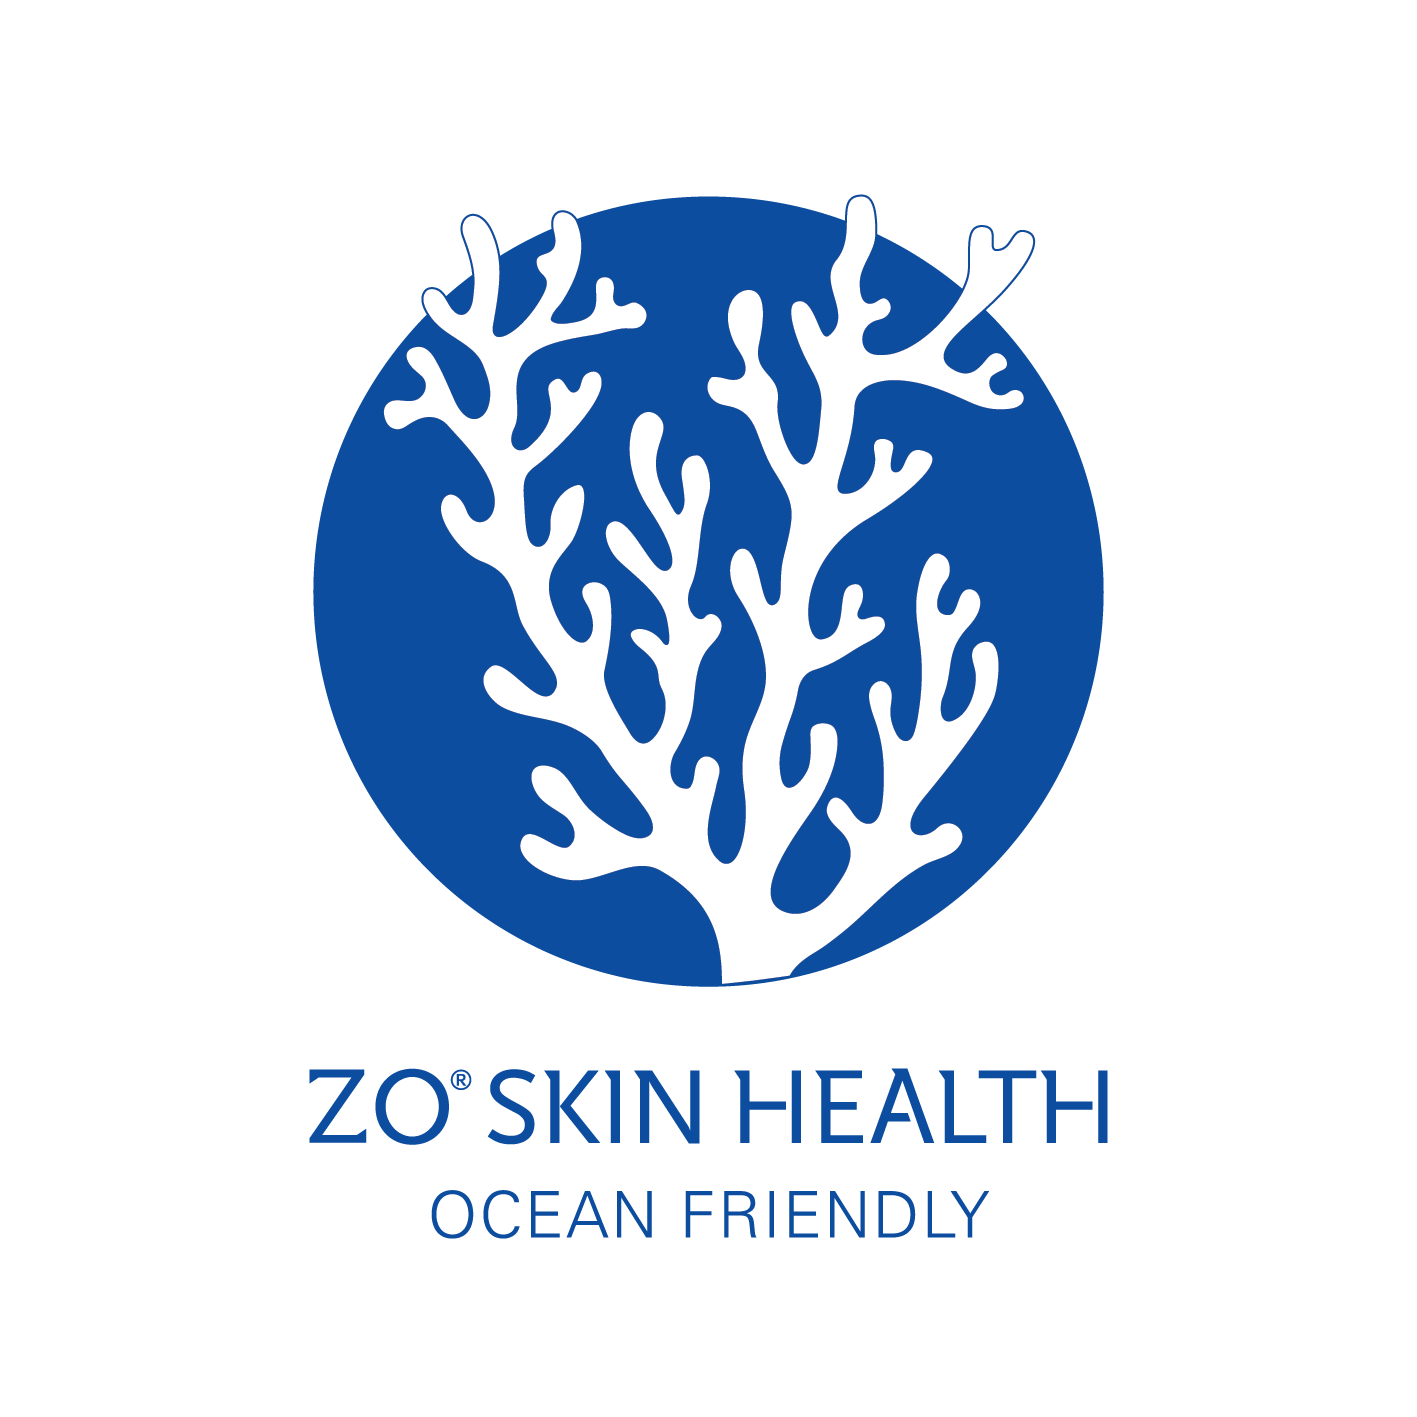 Skin Science Clinic - authorised ZO SKin Health reseller